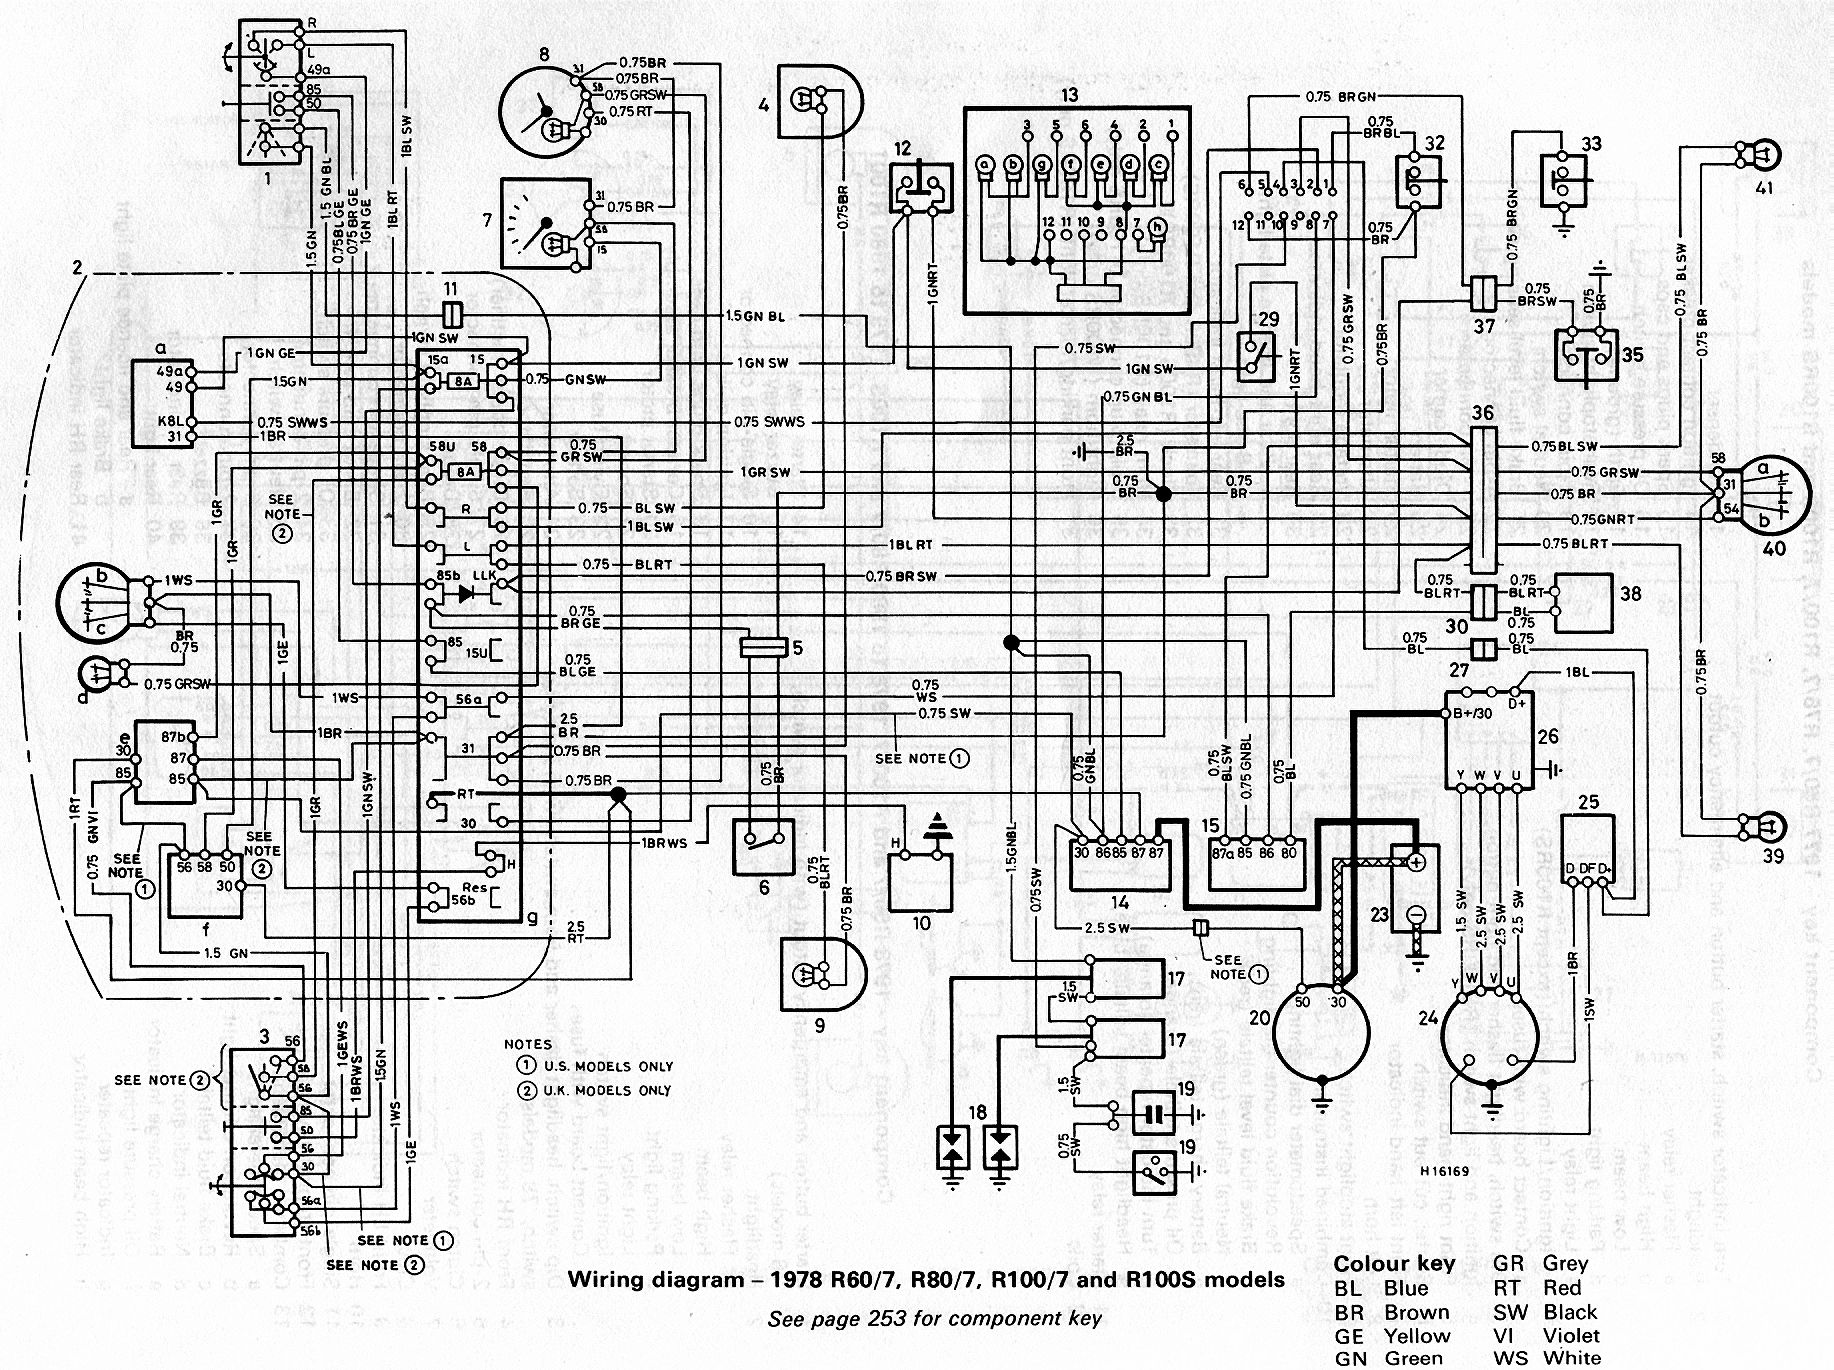 bmw r75 7 wiring diagram schematics wiring diagrams rh wine174 com wiring diagram bmw k1200lt wiring diagram bmw e91